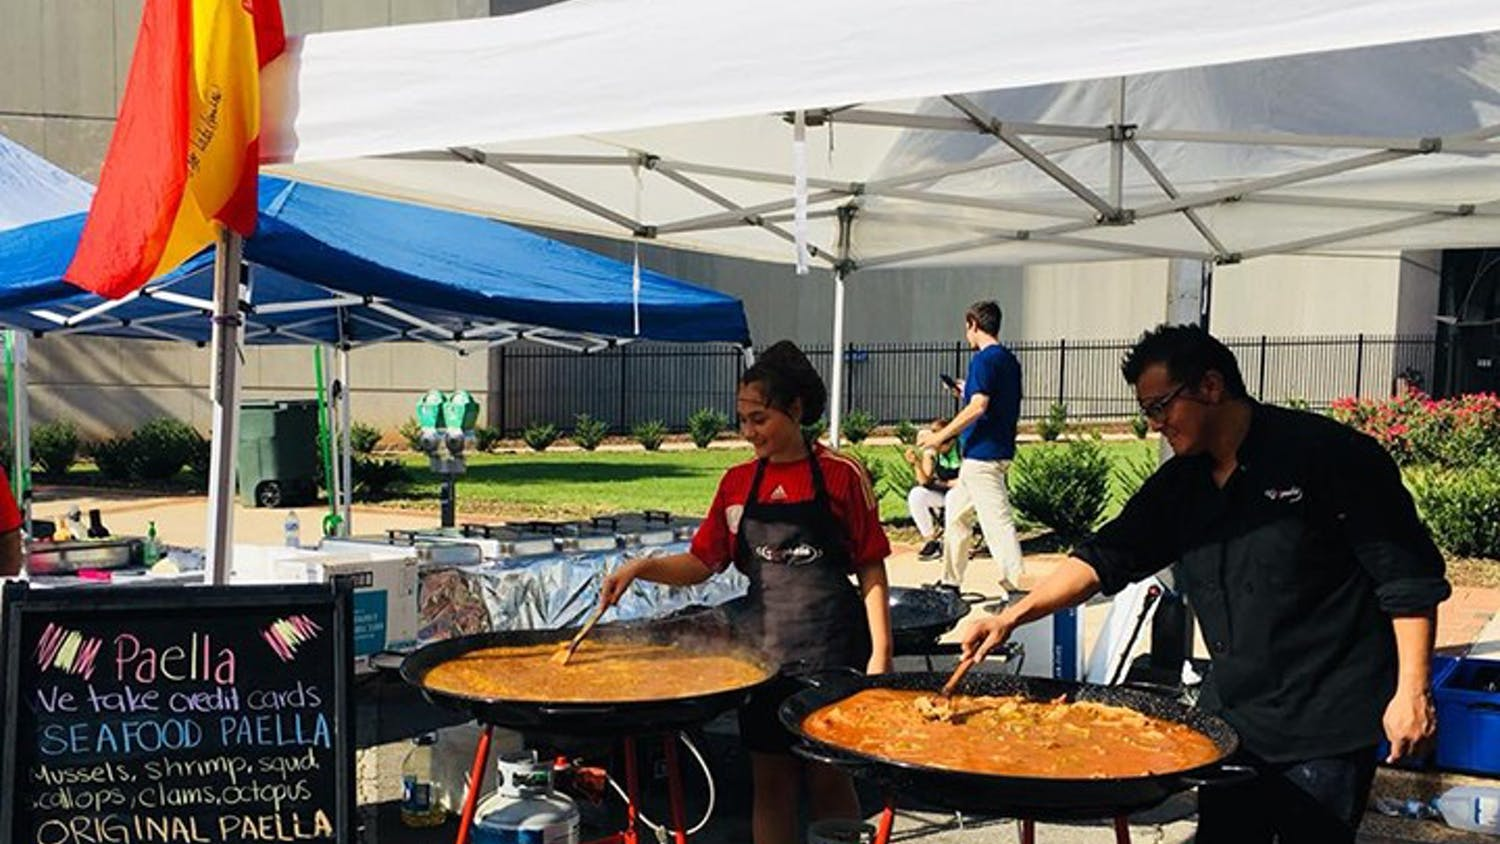 I Love Paella USA is a frequent vendor at the Soda City Market on Saturdays.